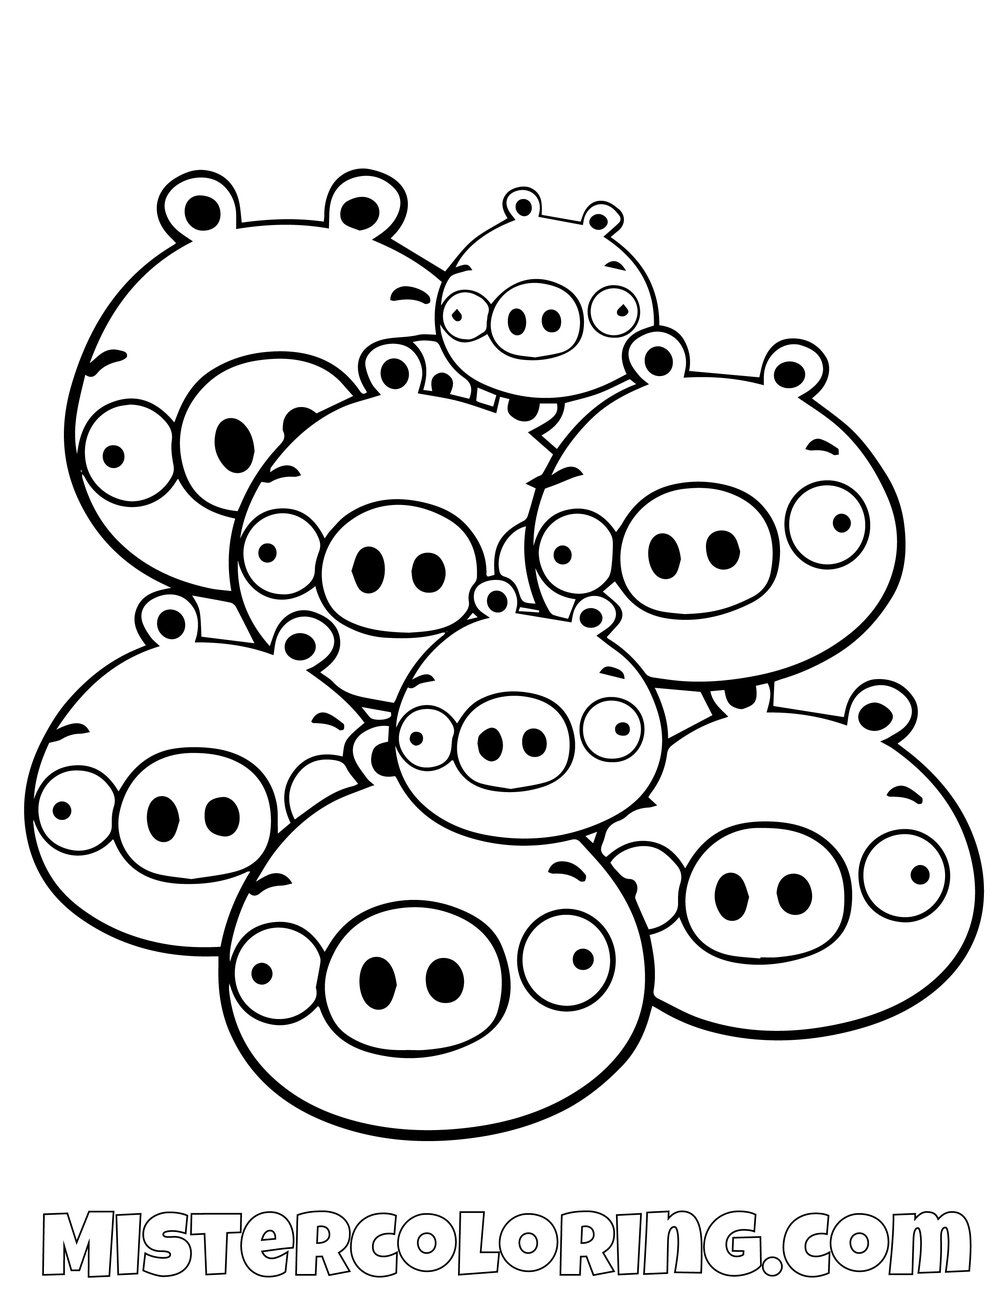 A Group Of Pigs Angry Birds Coloring Pages Bird Coloring Pages Tinkerbell Coloring Pages Owl Coloring Pages